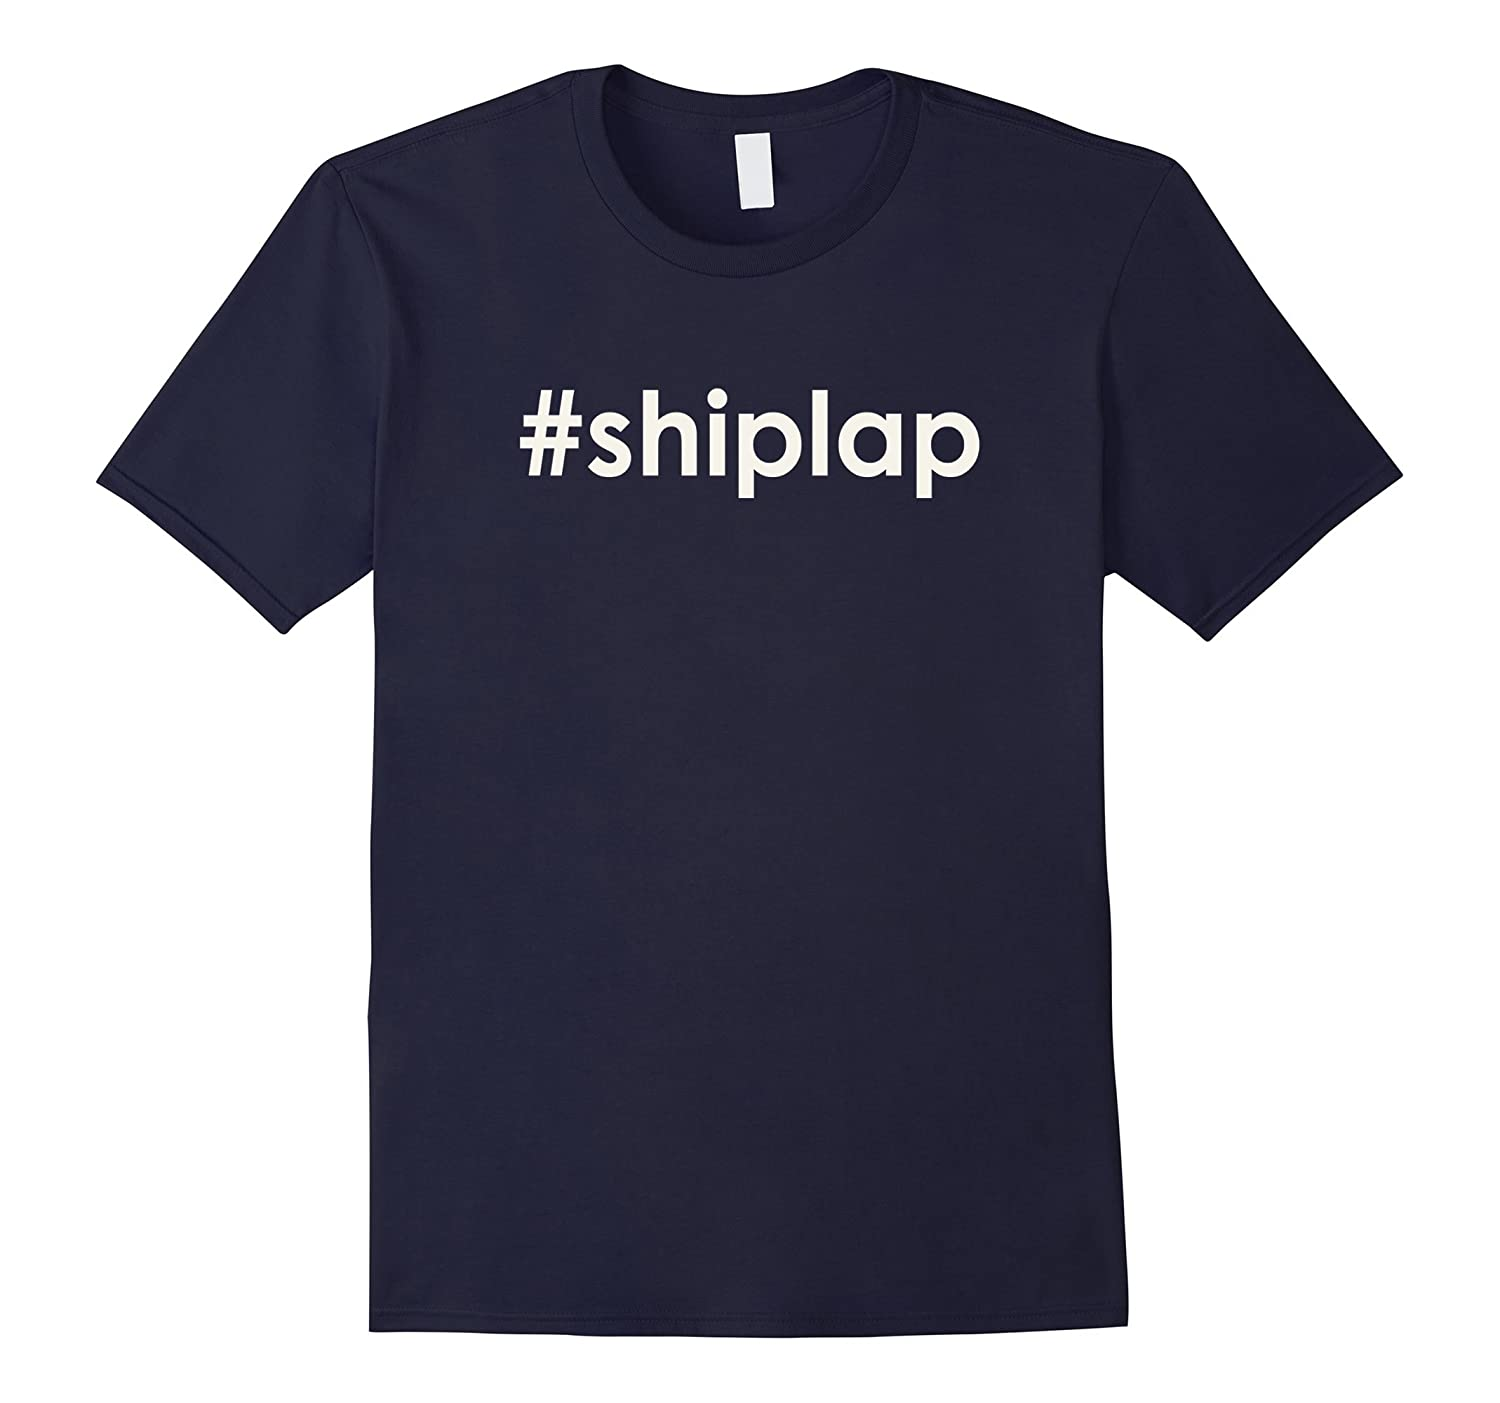 #SHIPLAP Shirt for Men and Women #SHIPLAP T-Shirt-T-Shirt